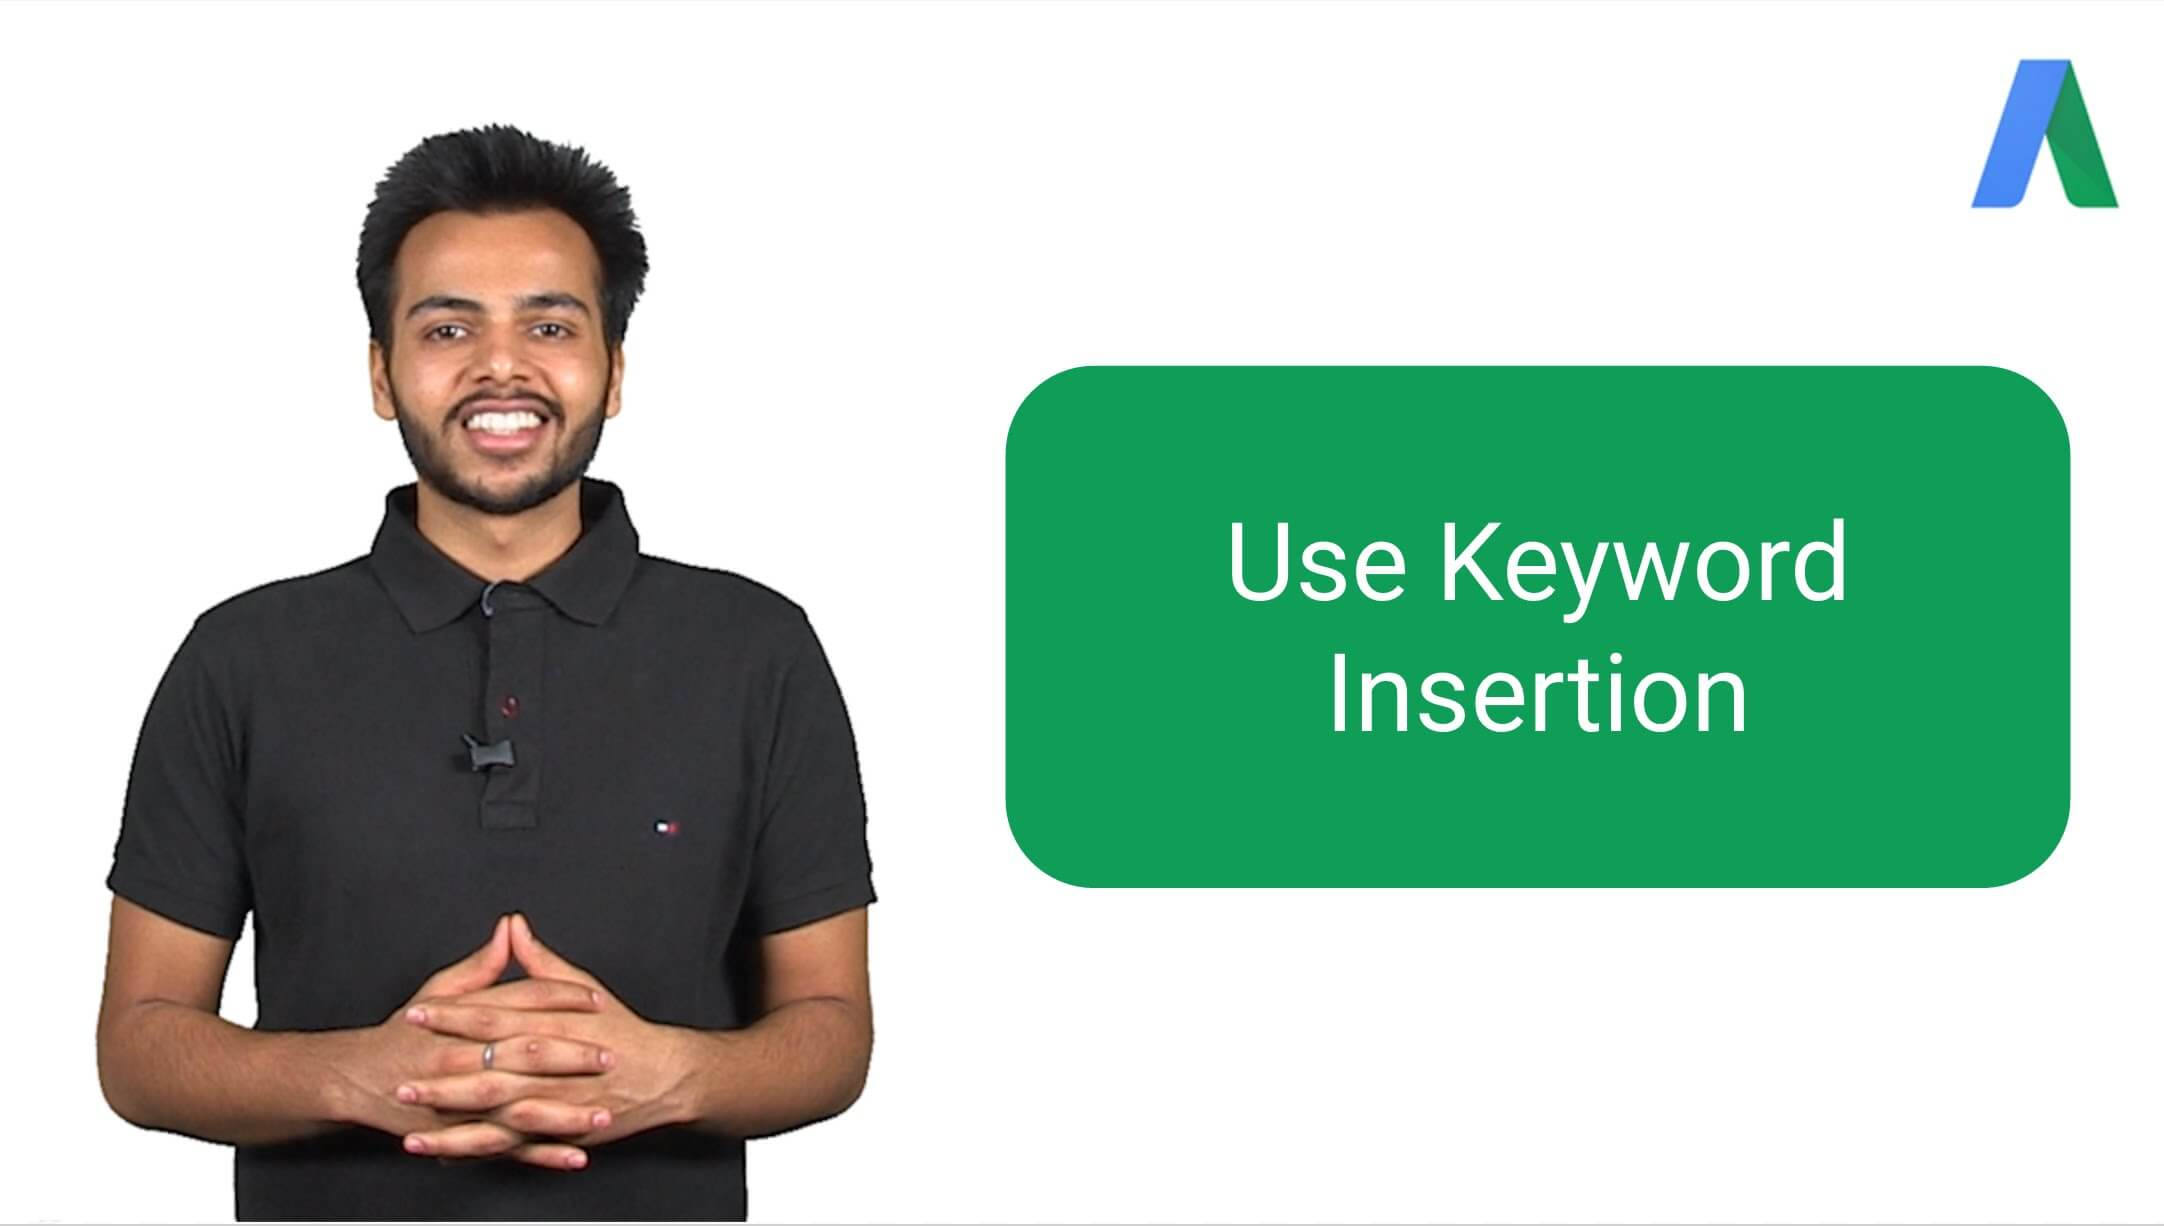 How to Use Keyword Insertion